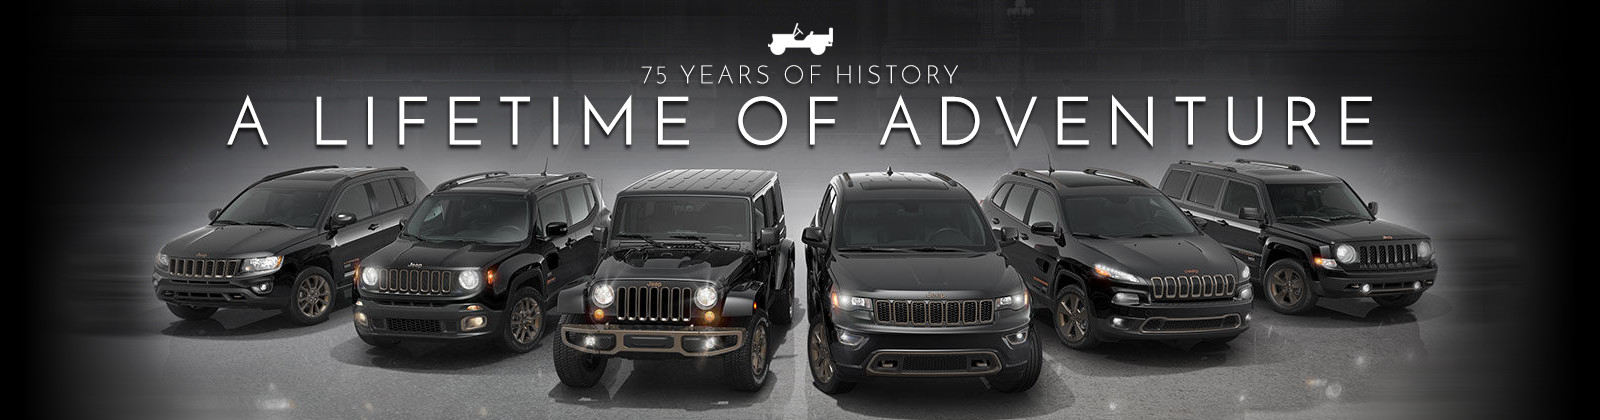 Gelimiteerde serie Jeep '75th Anniversary' editions